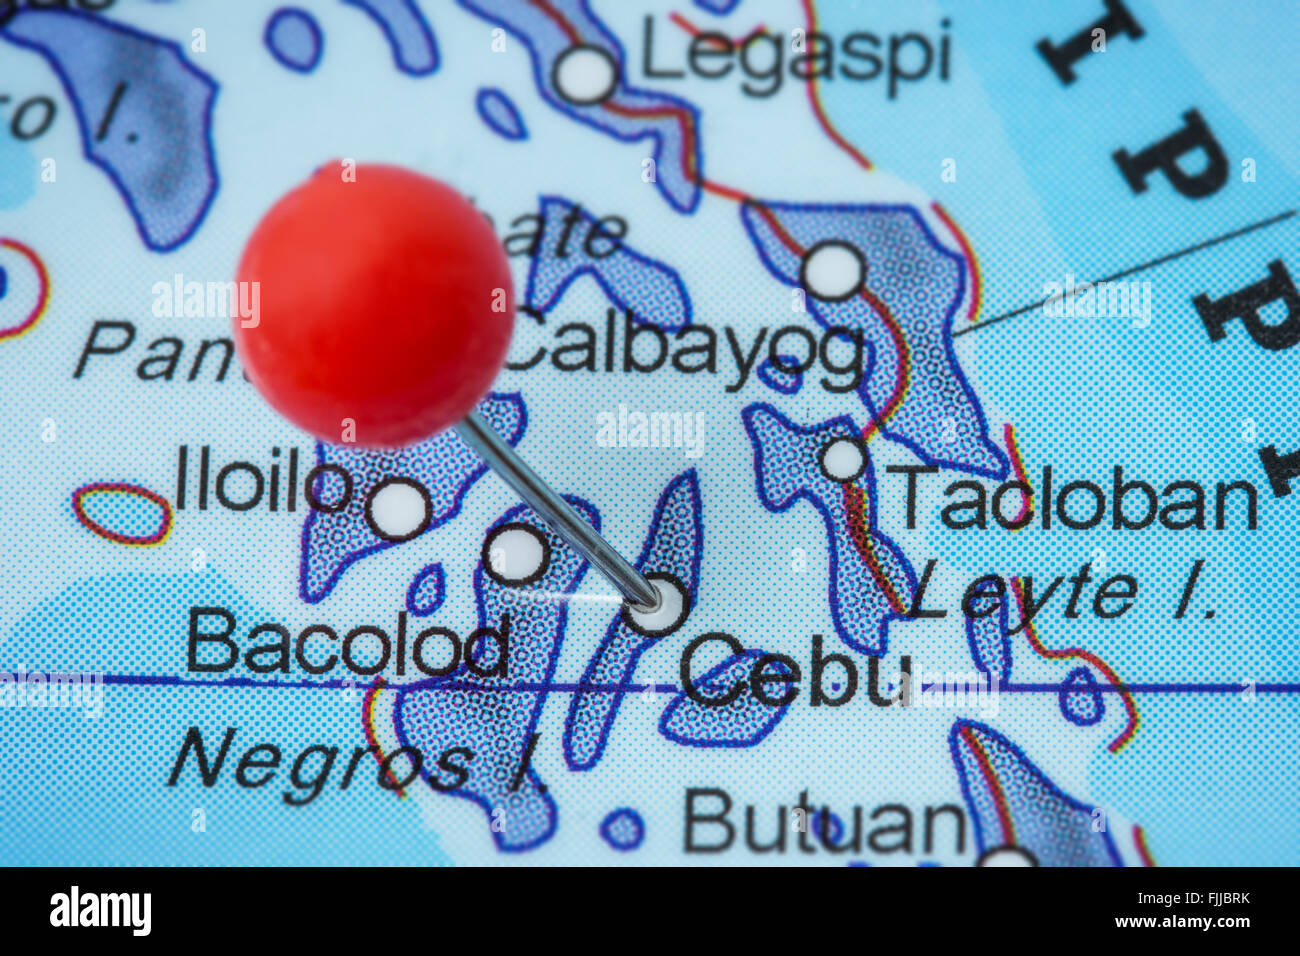 Close-up of a red pushpin in a map of Cebu, Philippines. - Stock Image